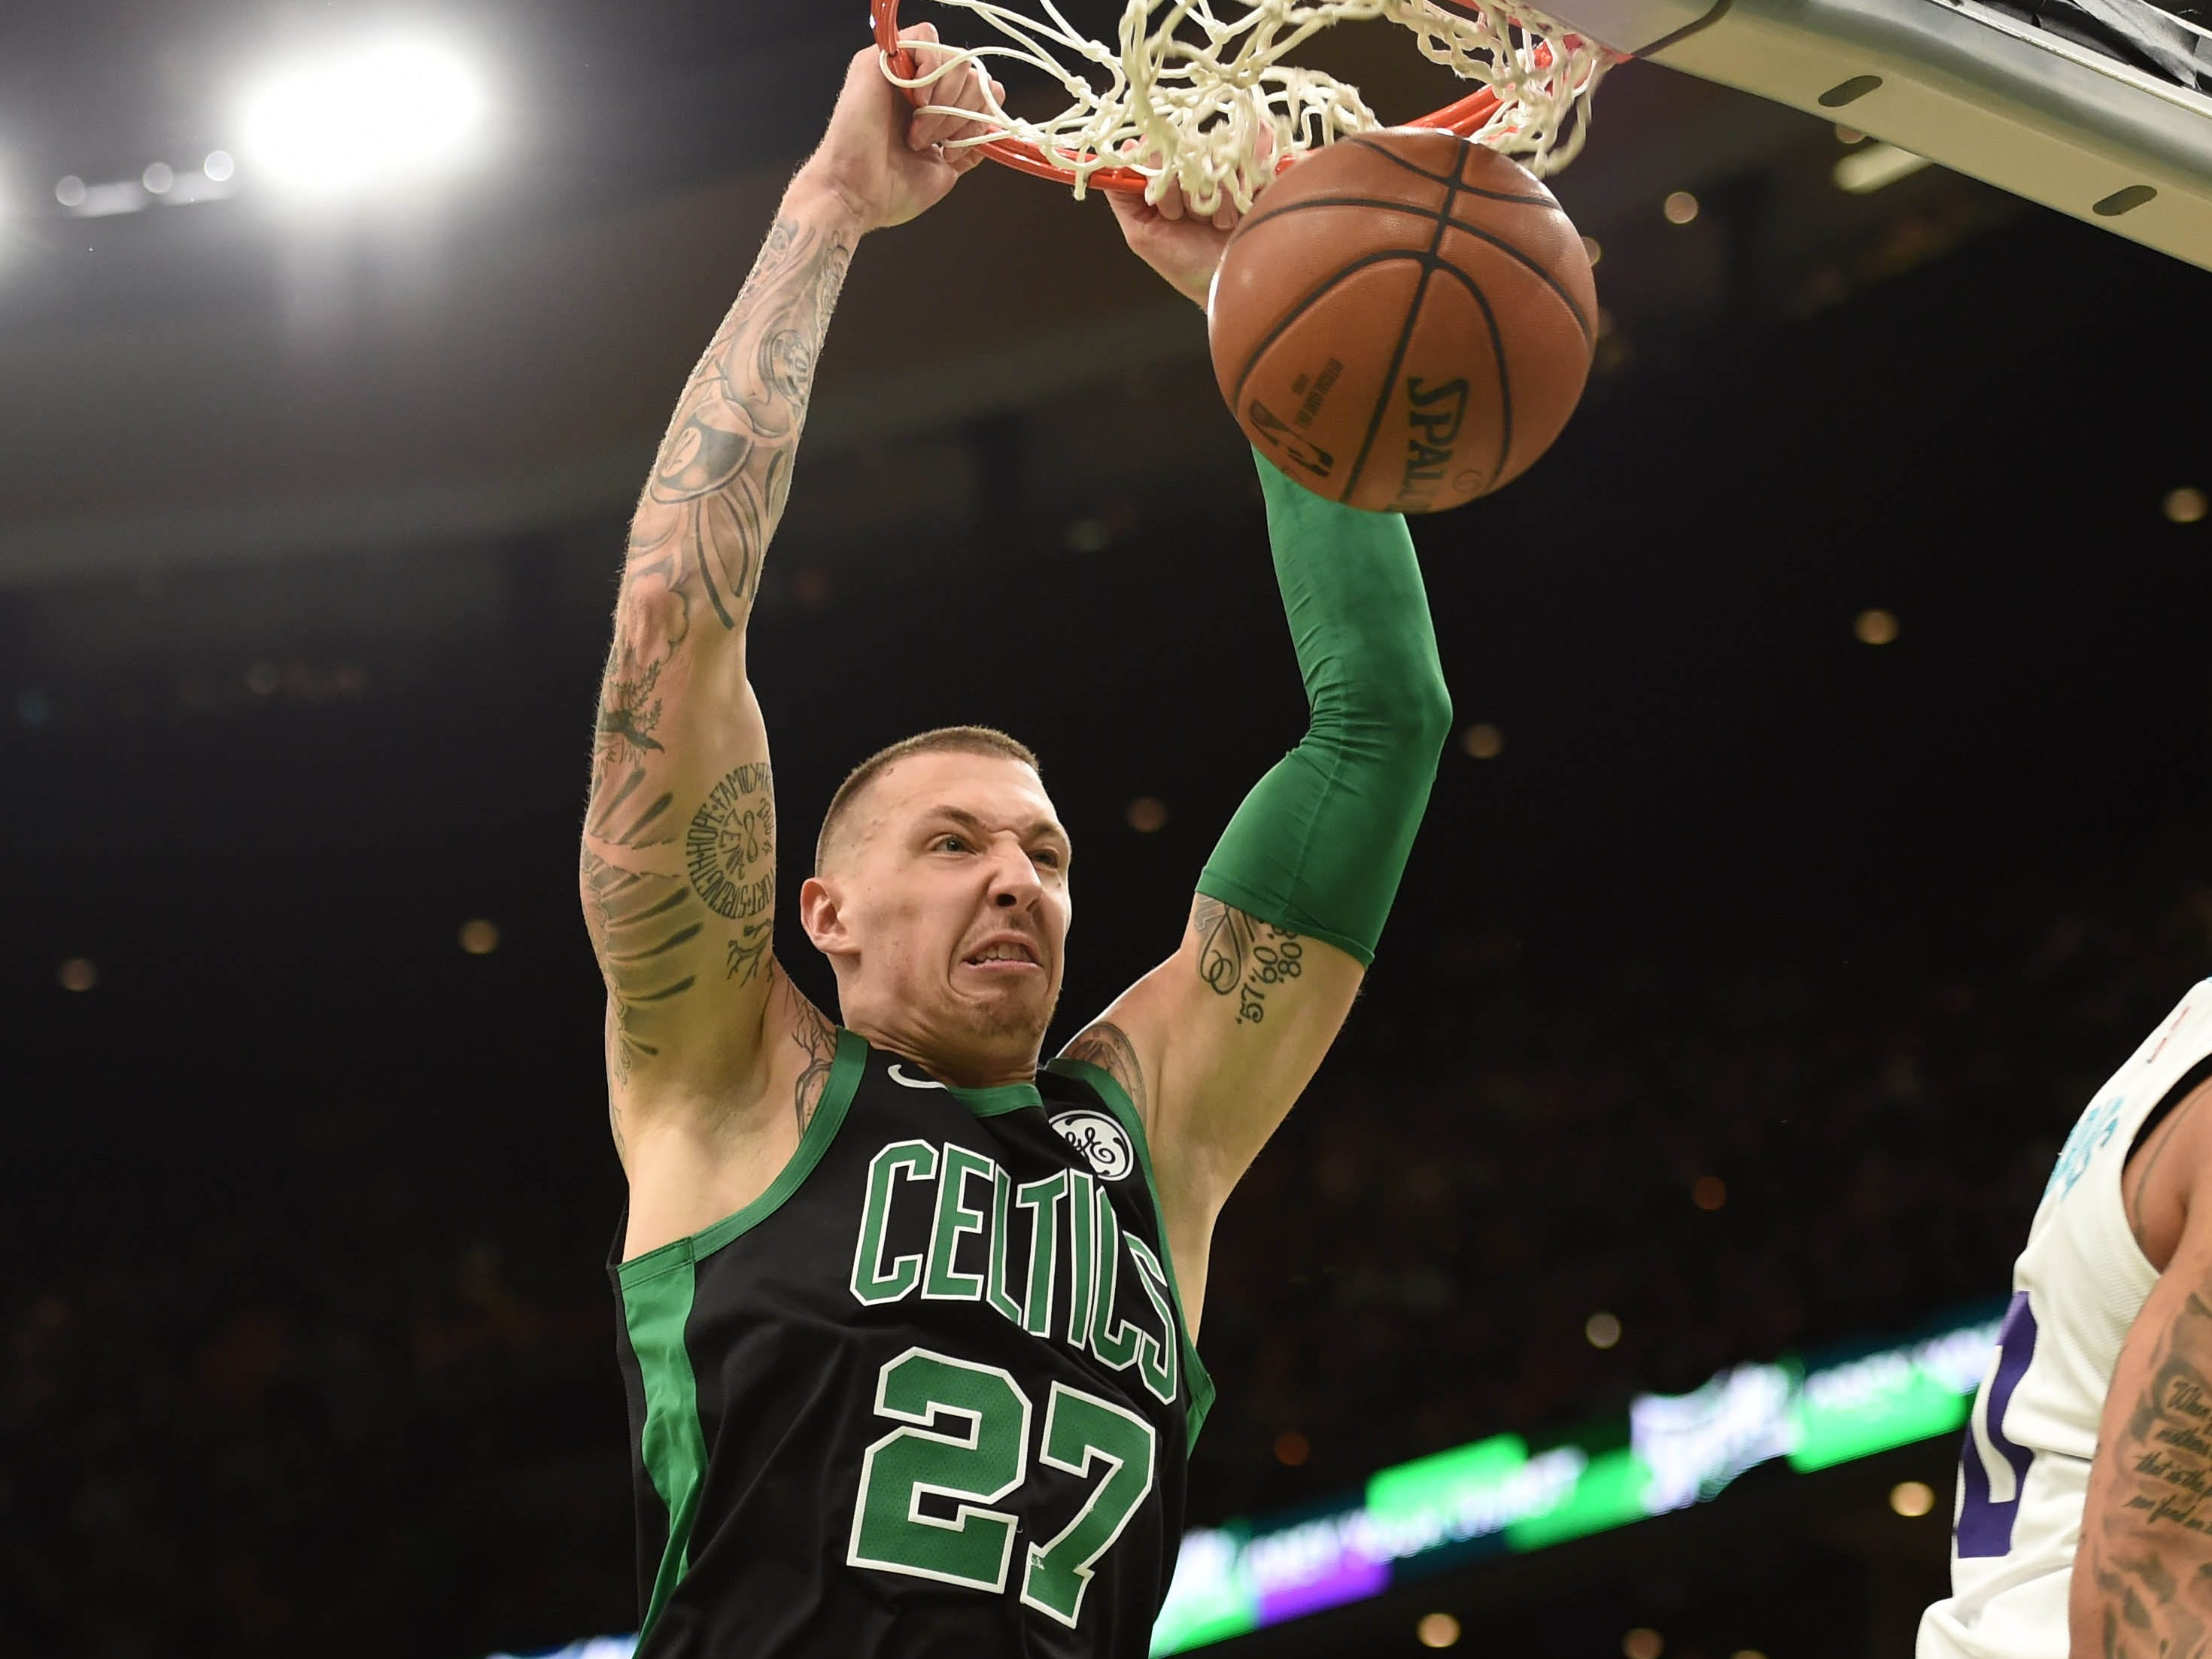 Dec. 23: Celtics forward Daniel Theis throws it down with a scowl during the second half against the Hornets in Boston.